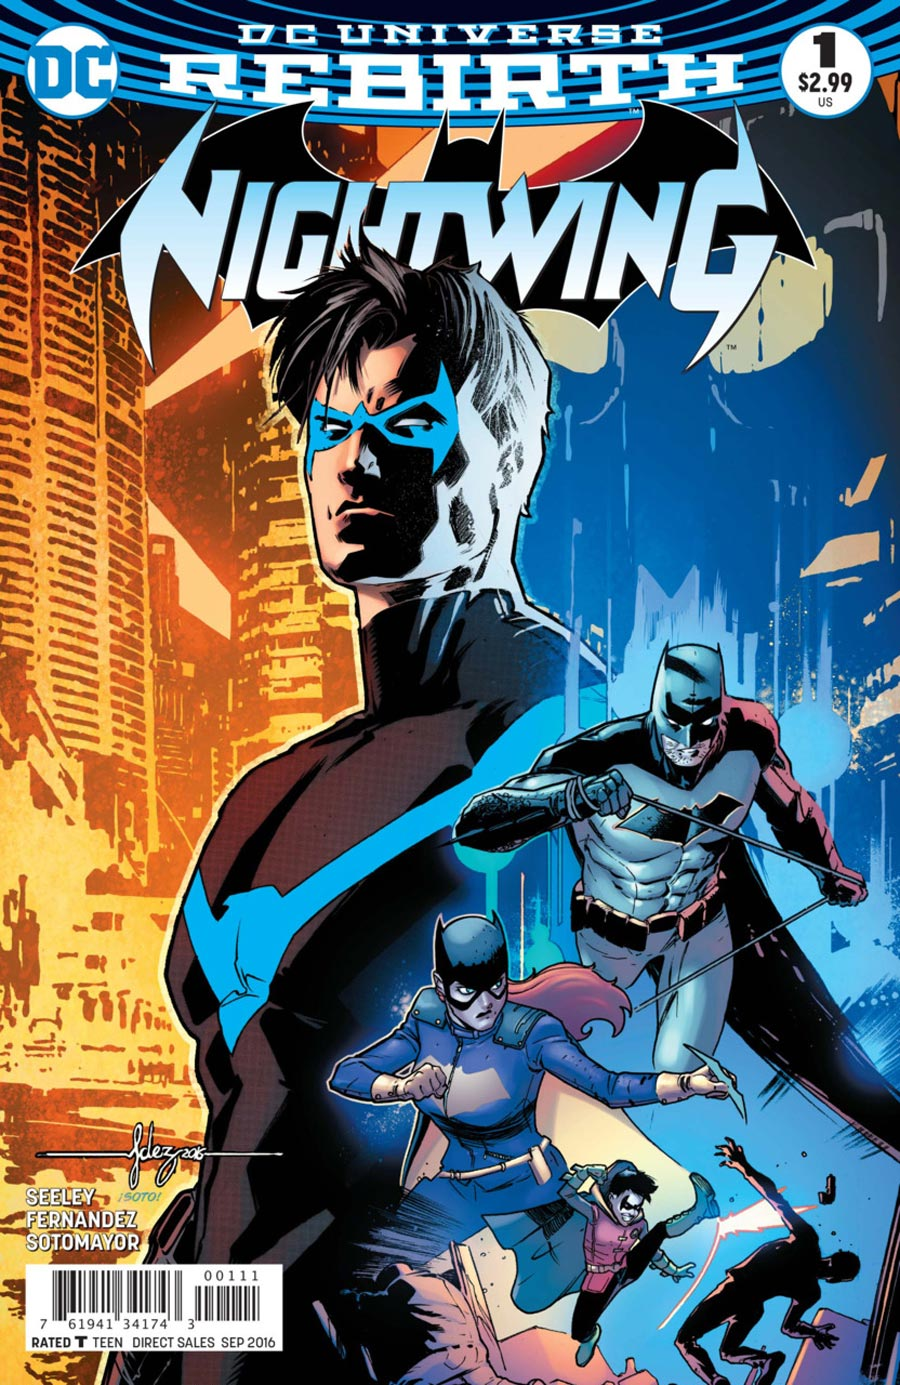 nightwing-comics-volume-1-issues-v4-2016-ongoing-rebirth-252360.jpg